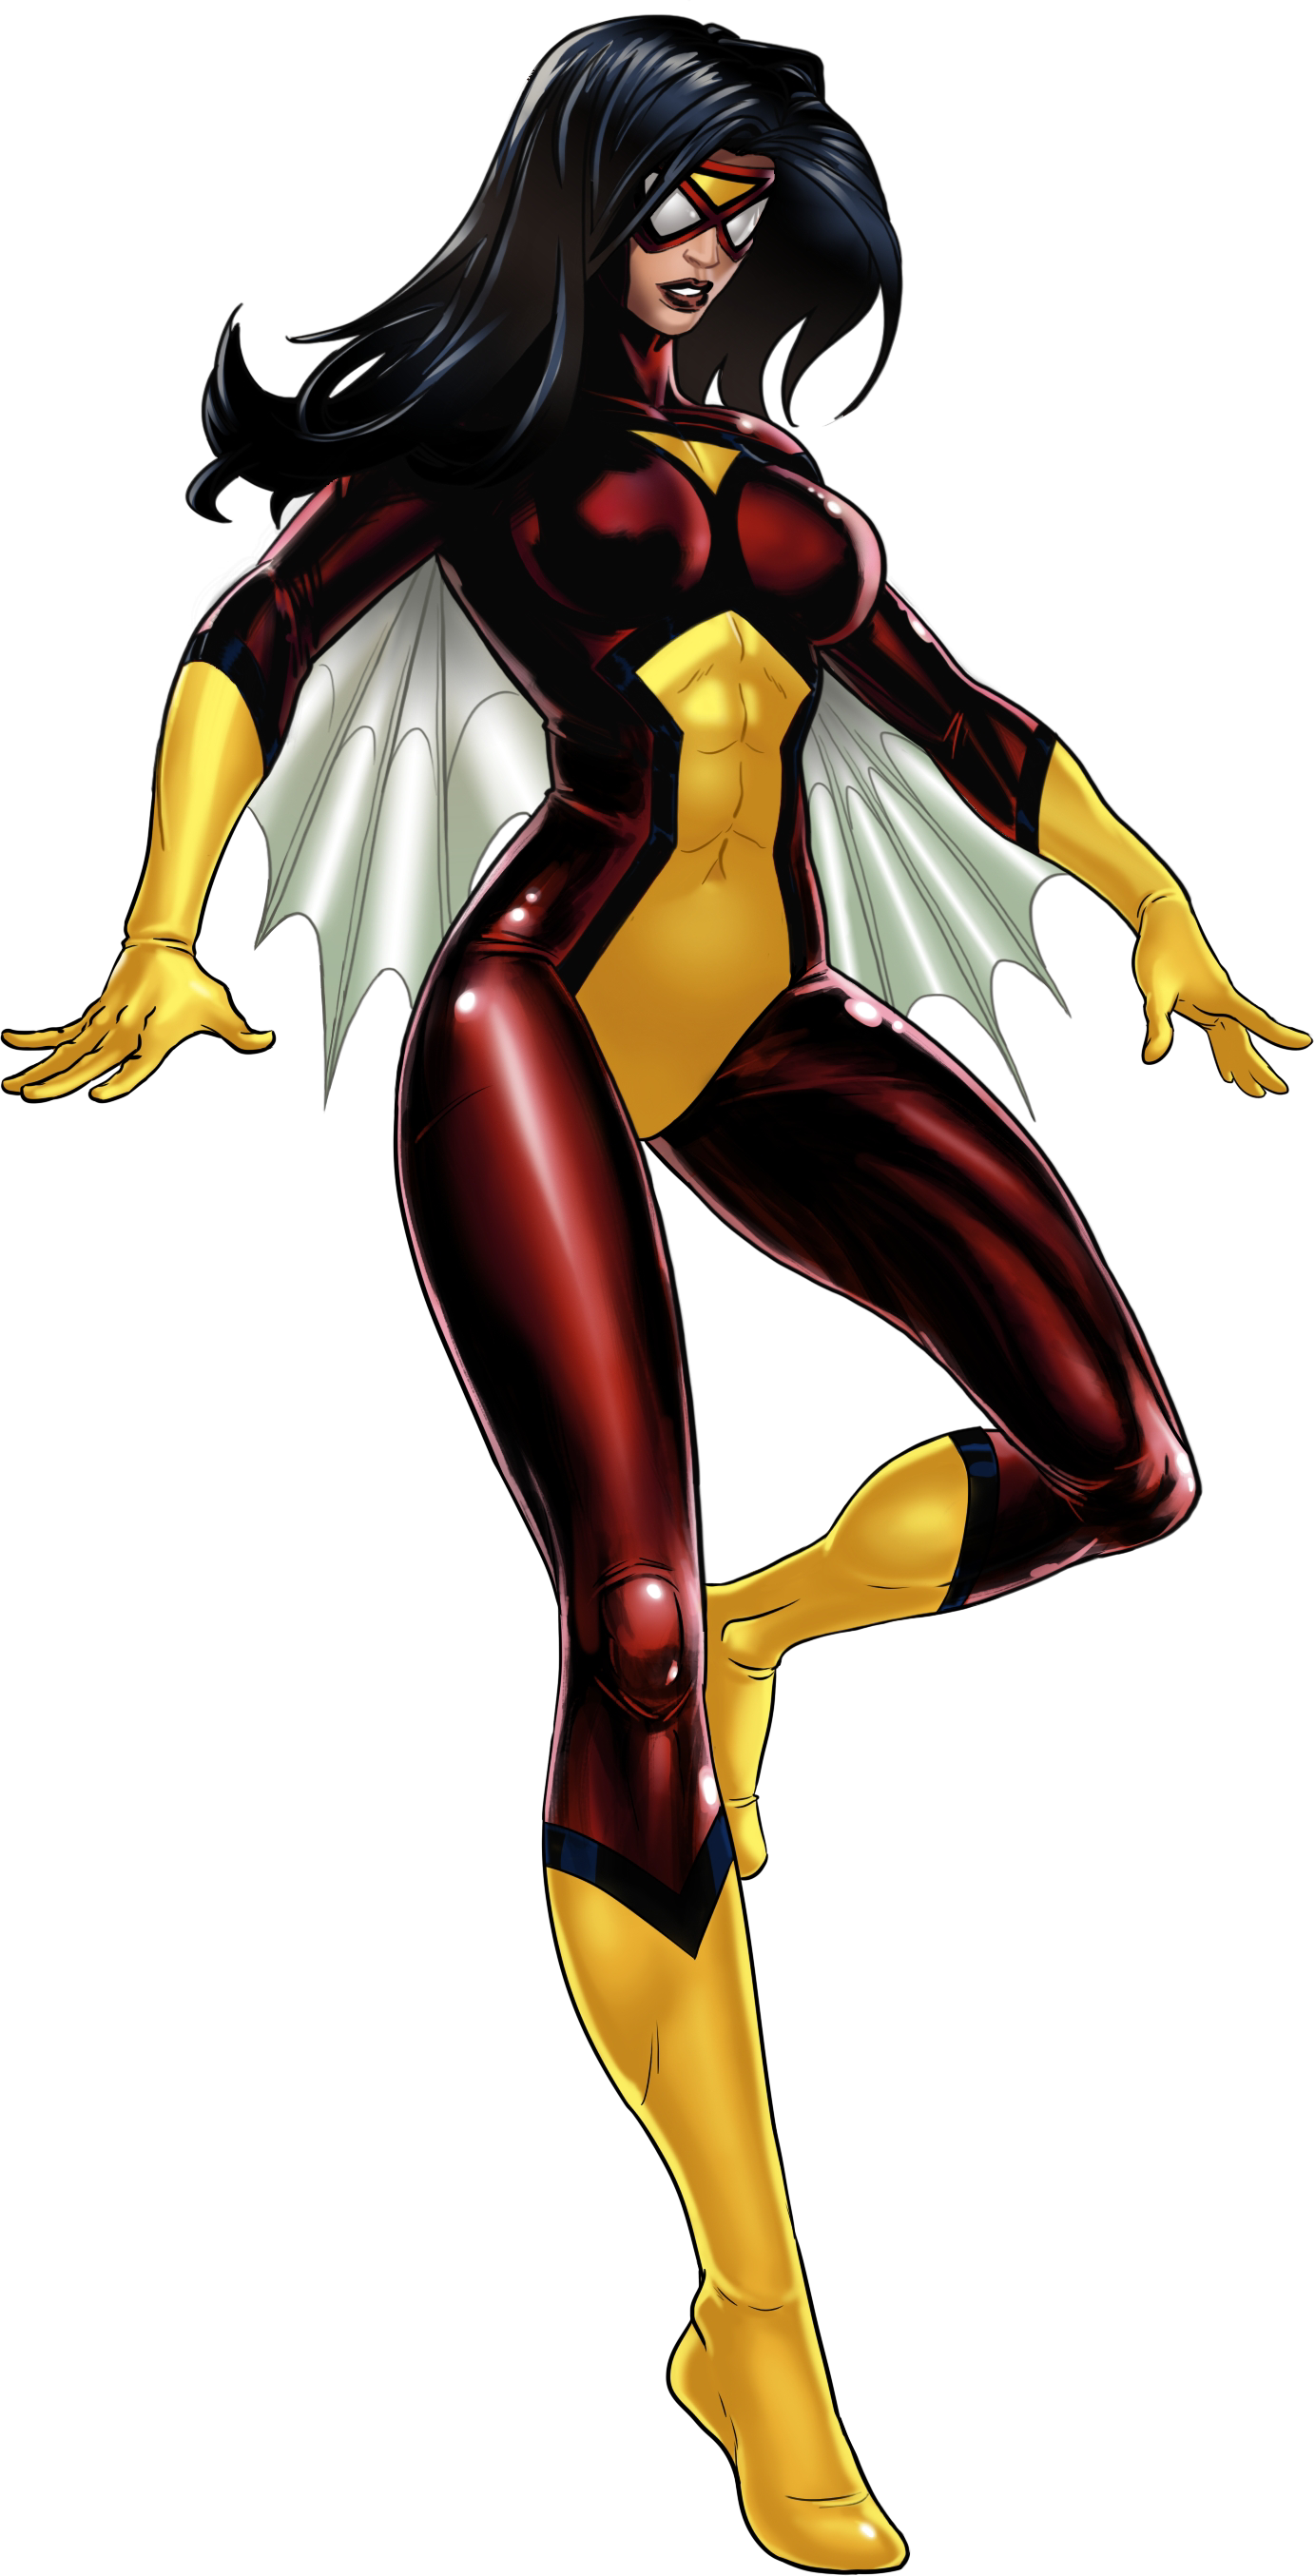 Image - Spider-Woman Portrait Art.png | Marvel: Avengers Alliance Wiki |  FANDOM powered by Wikia - Spider Woman PNG